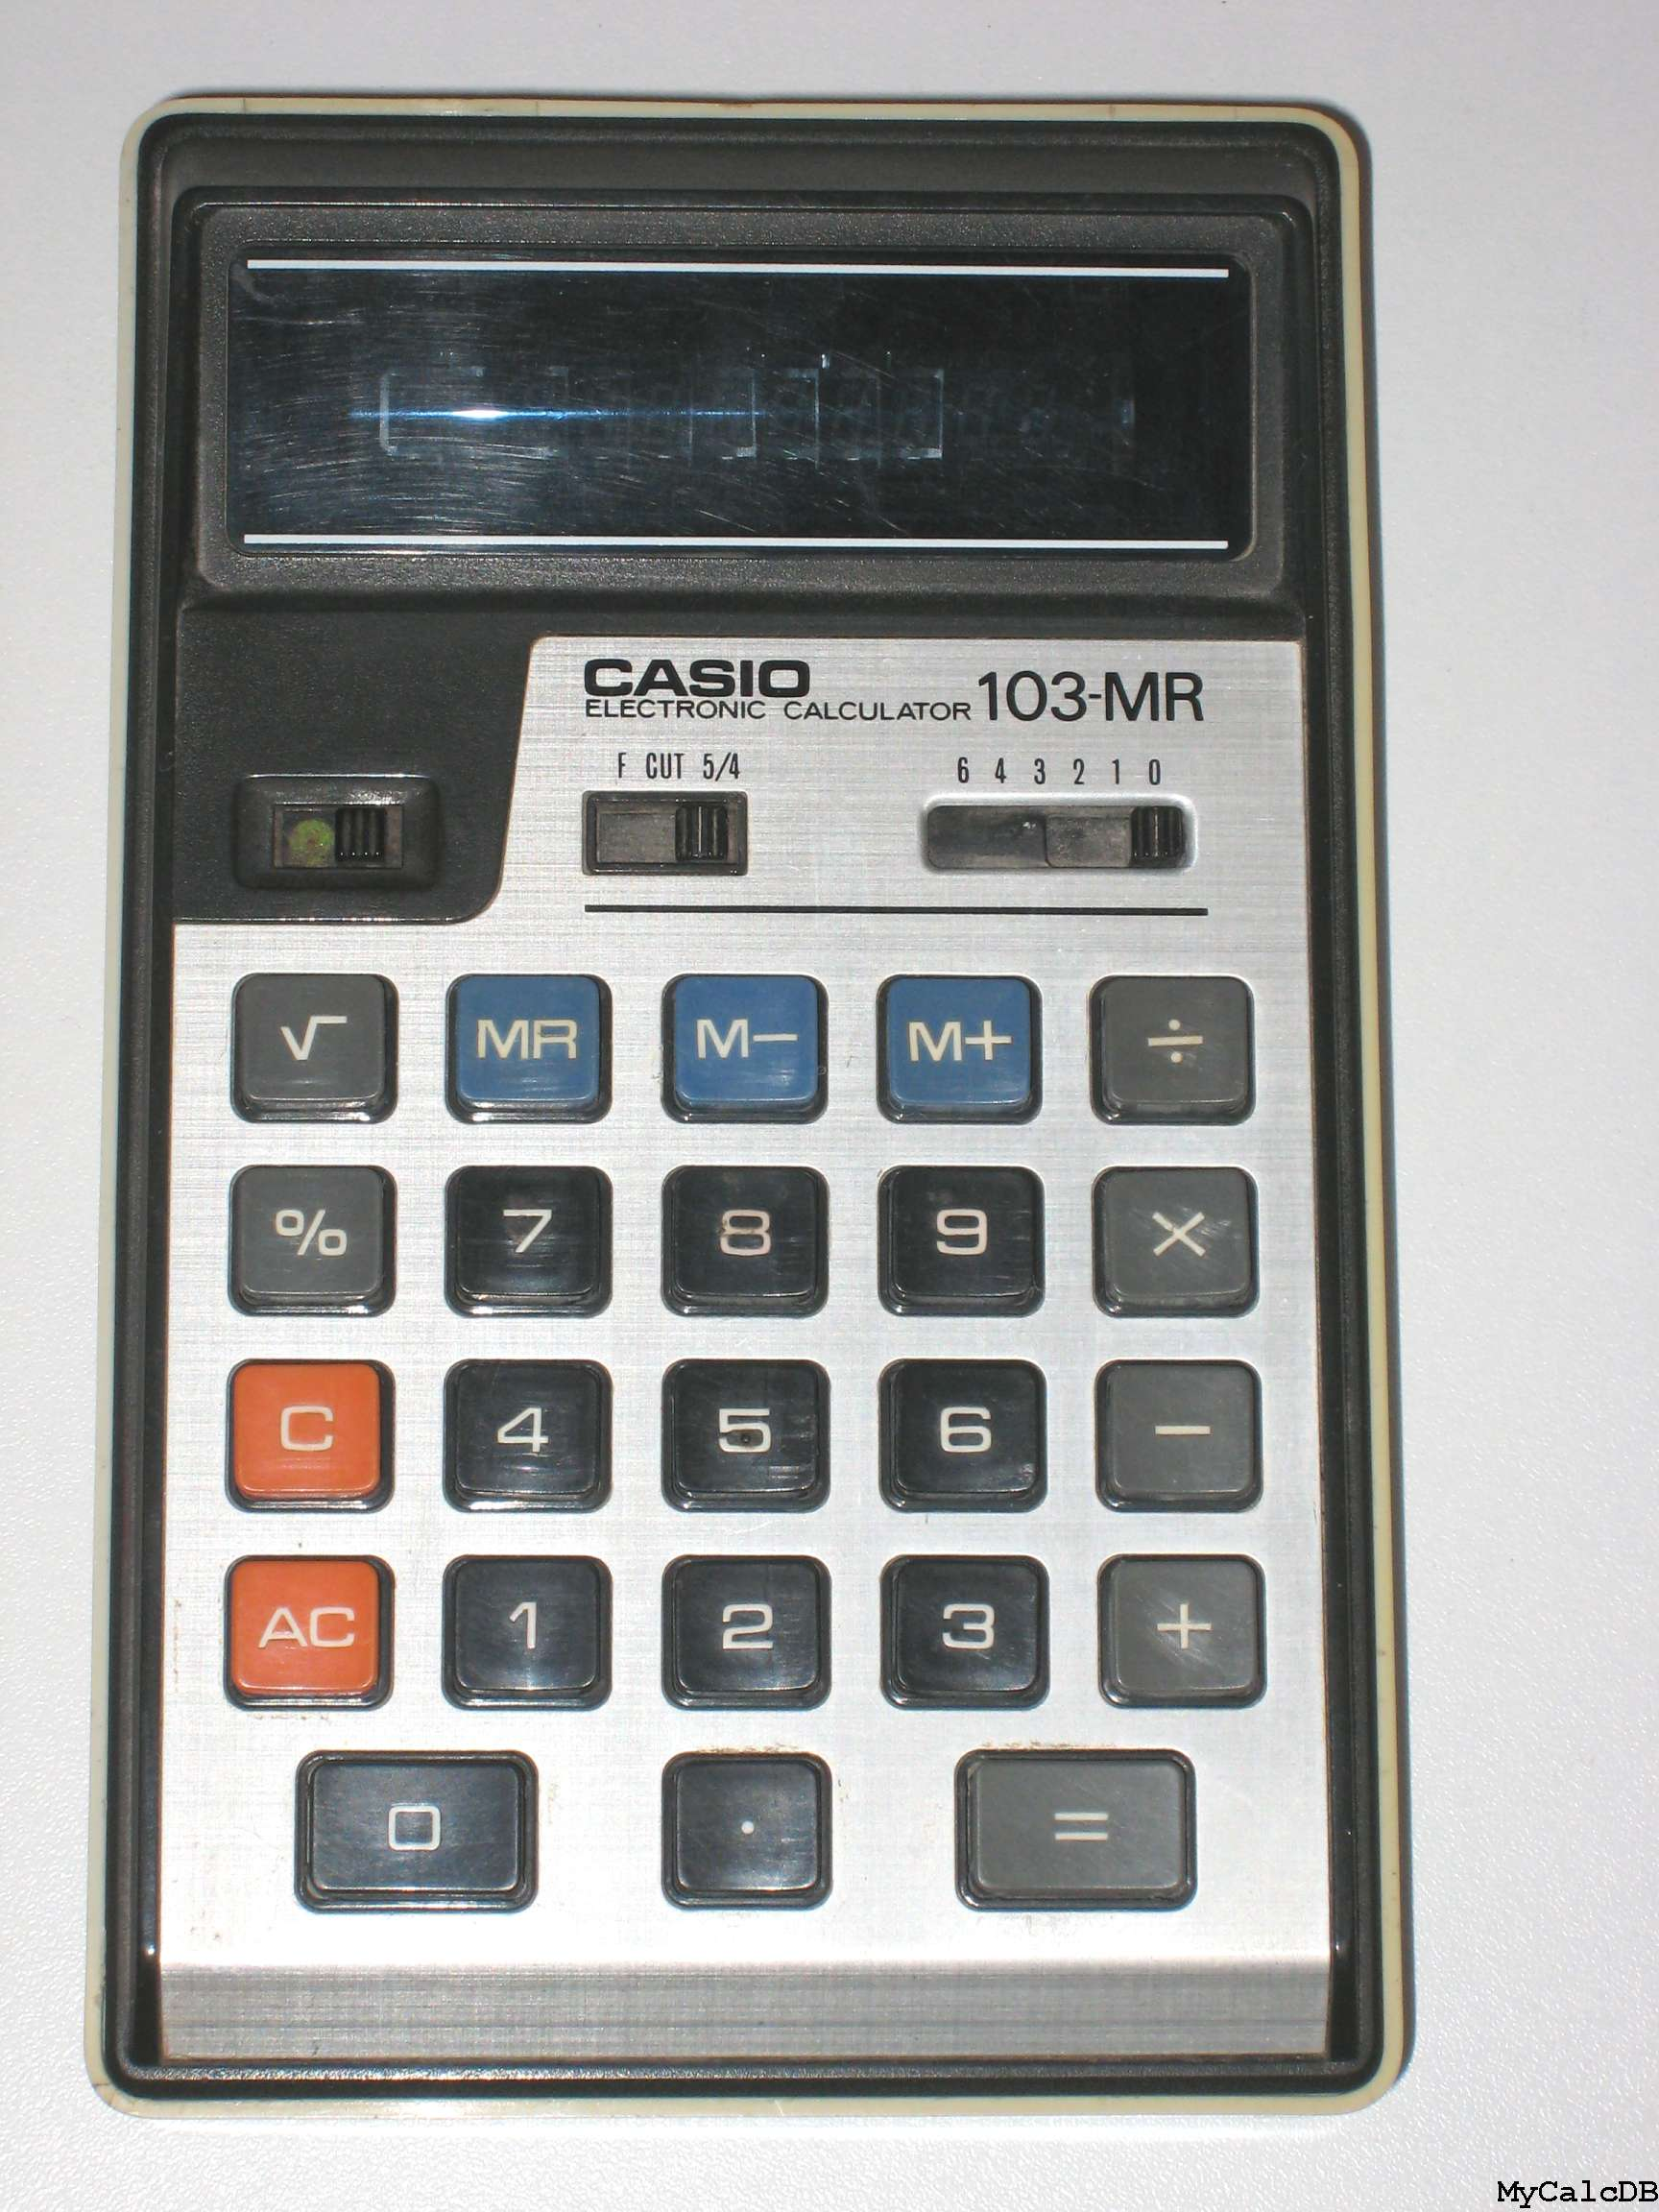 Casio 103-MR